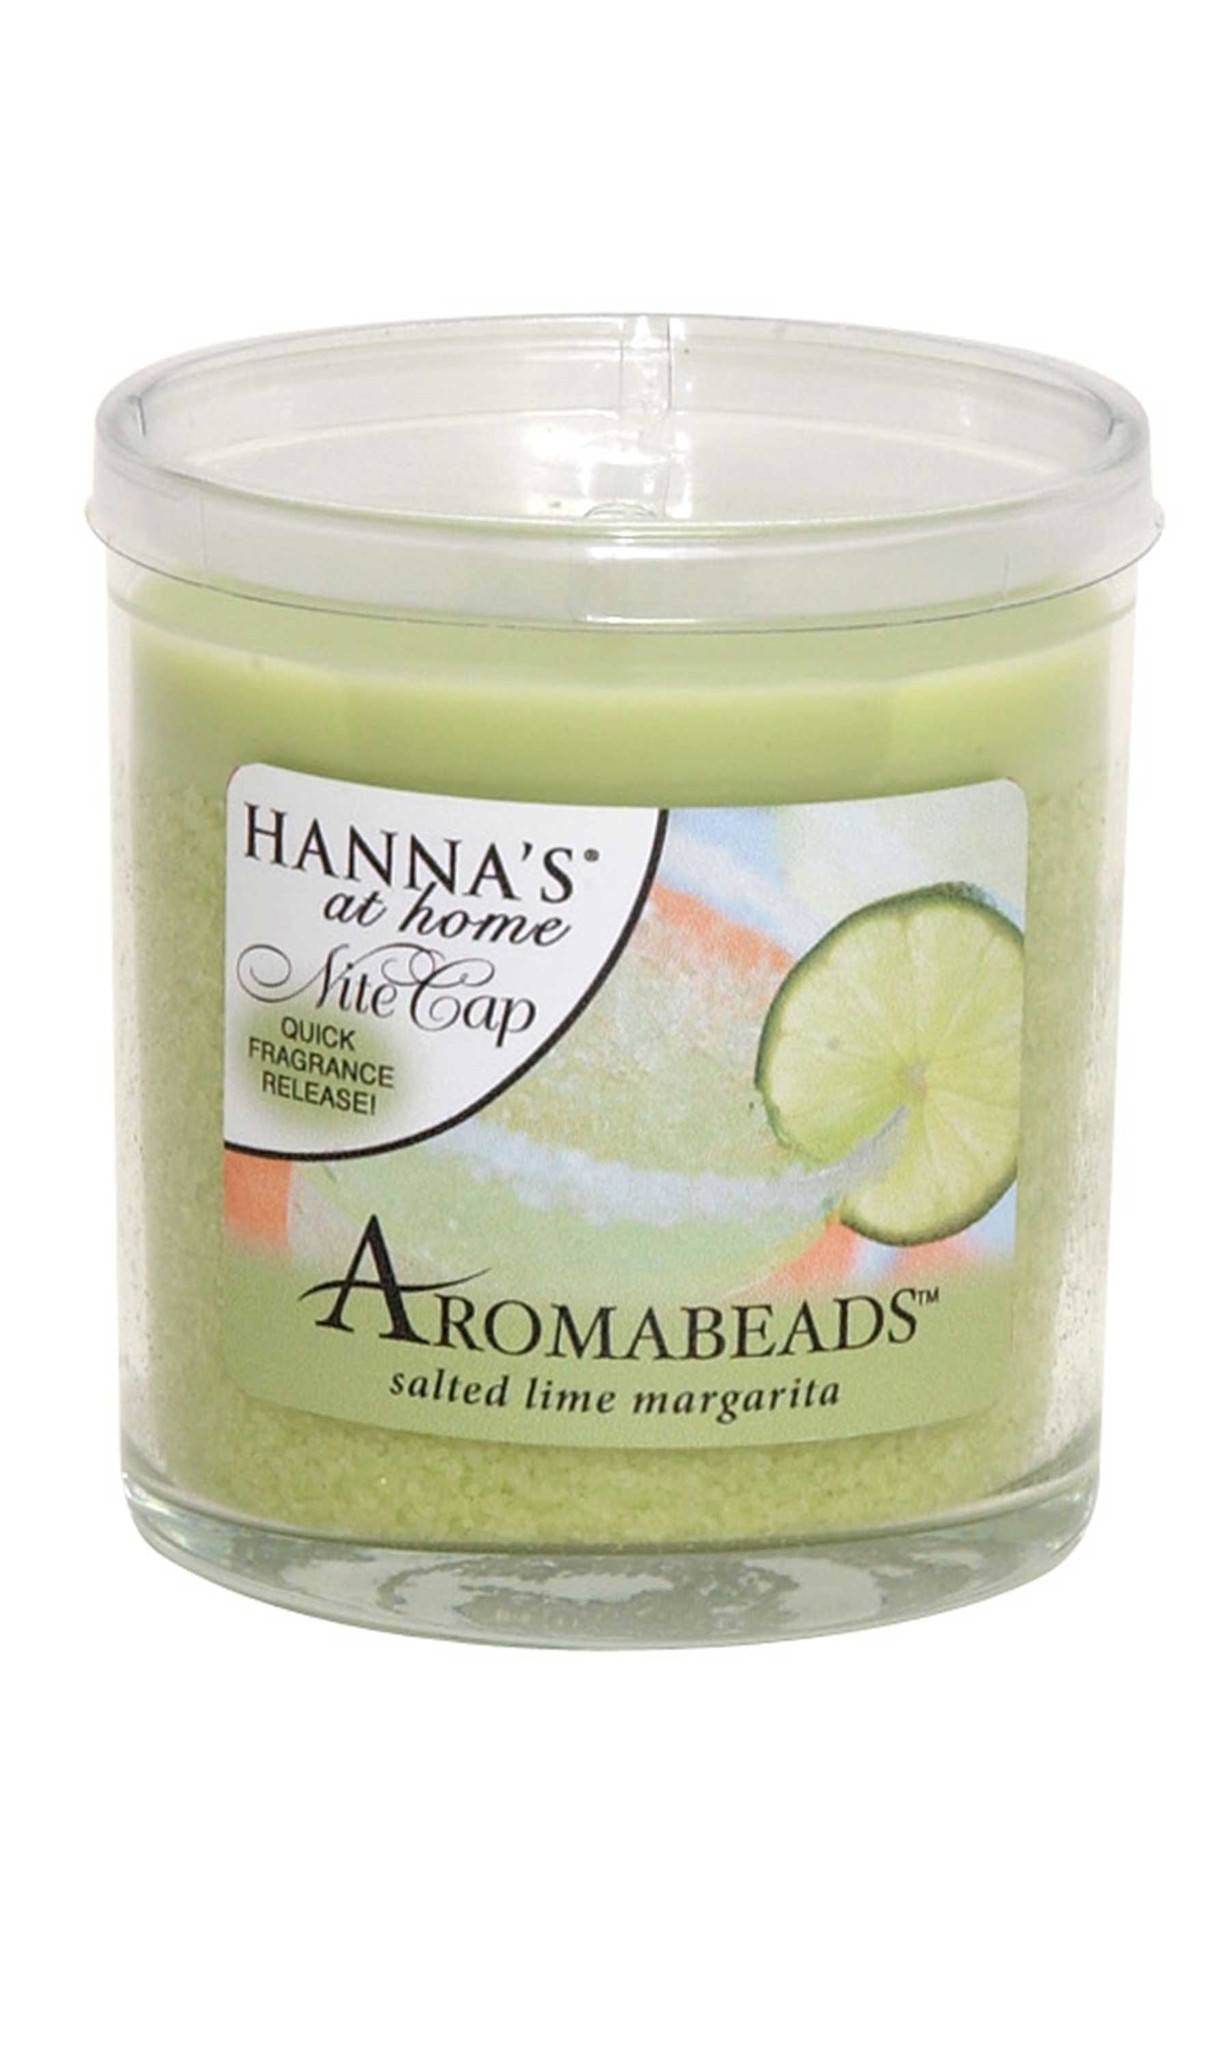 Aromabeads Salted Lime Margarita Scented Candle - Candlemart.com